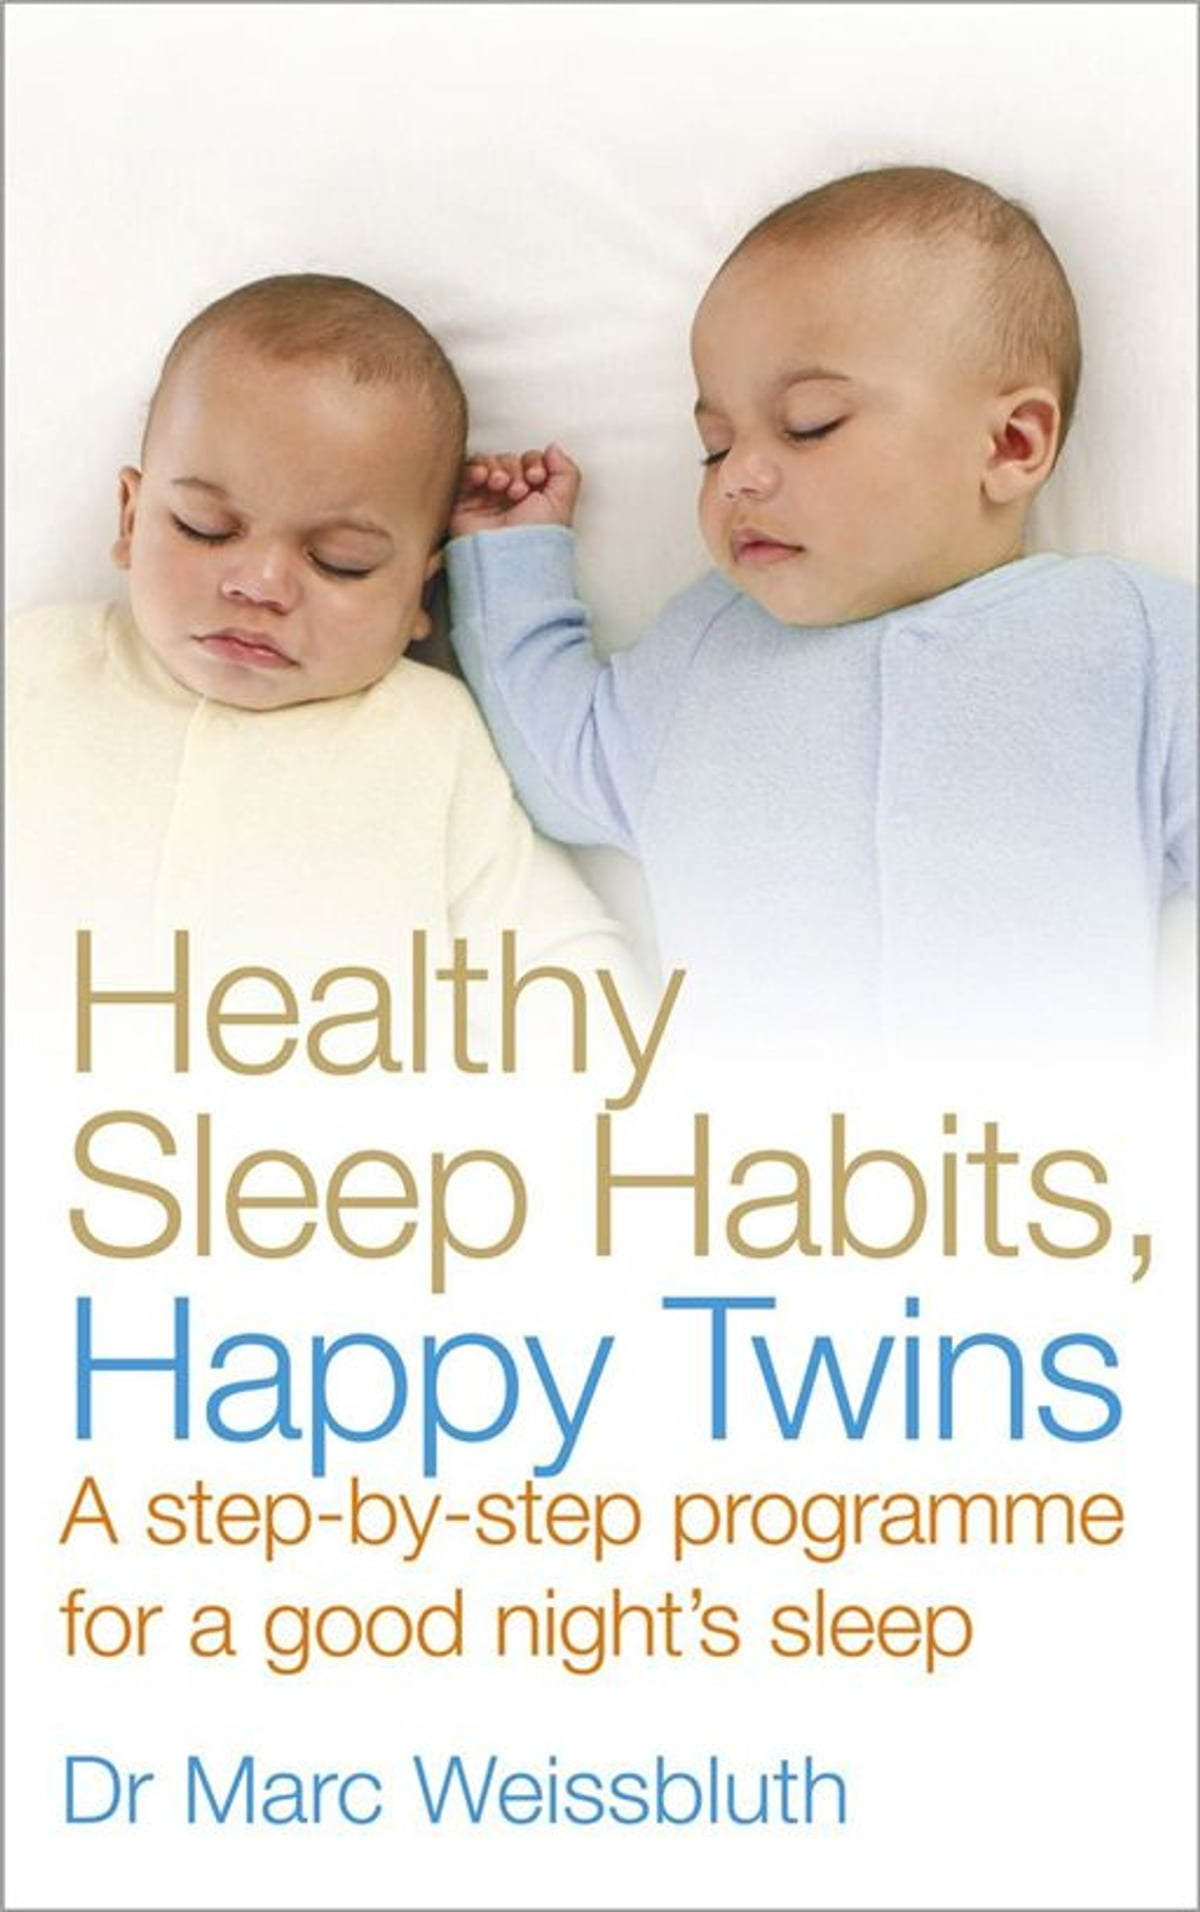 Healthy Sleep Habits, Happy Twins eBook by Dr Marc Weissbluth ...